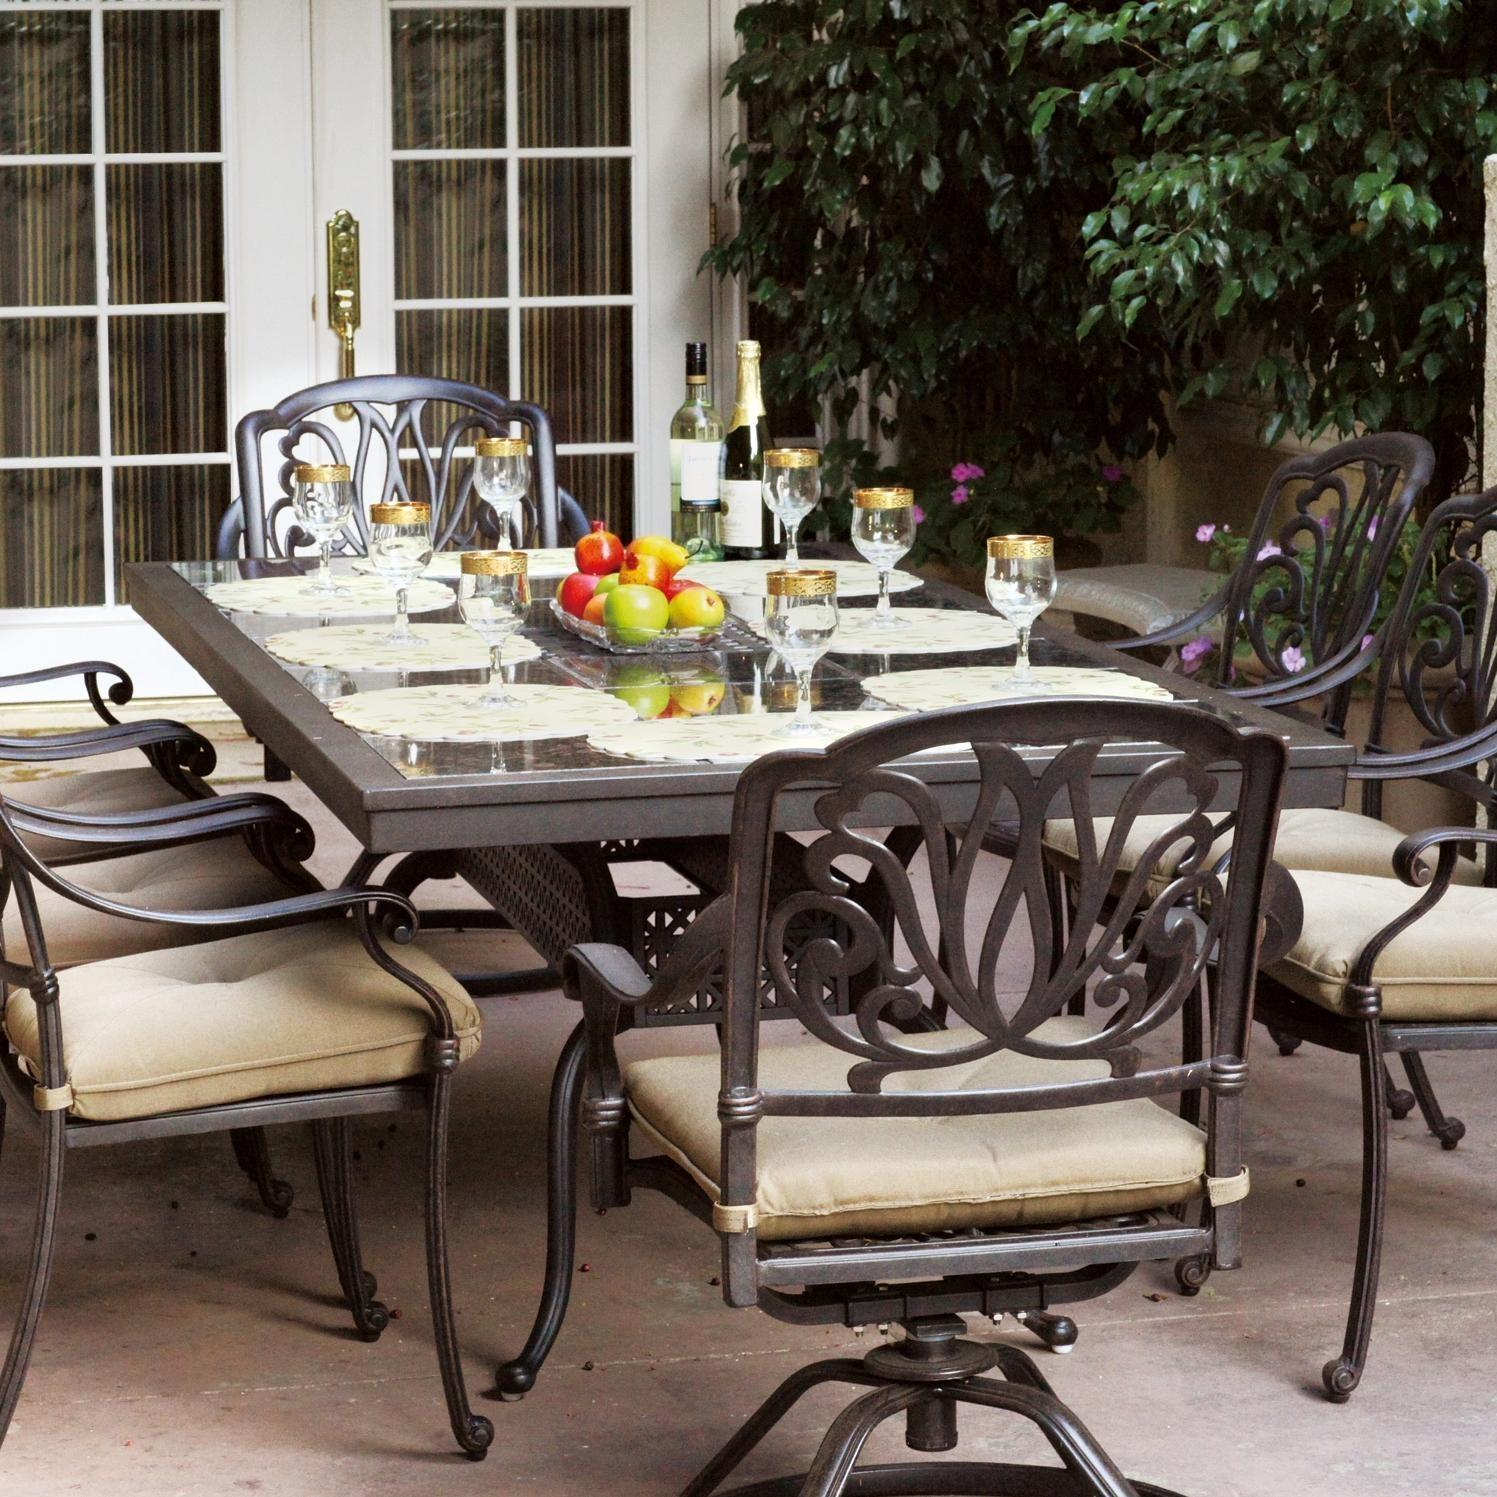 patio dining sets for 8 photo - 4